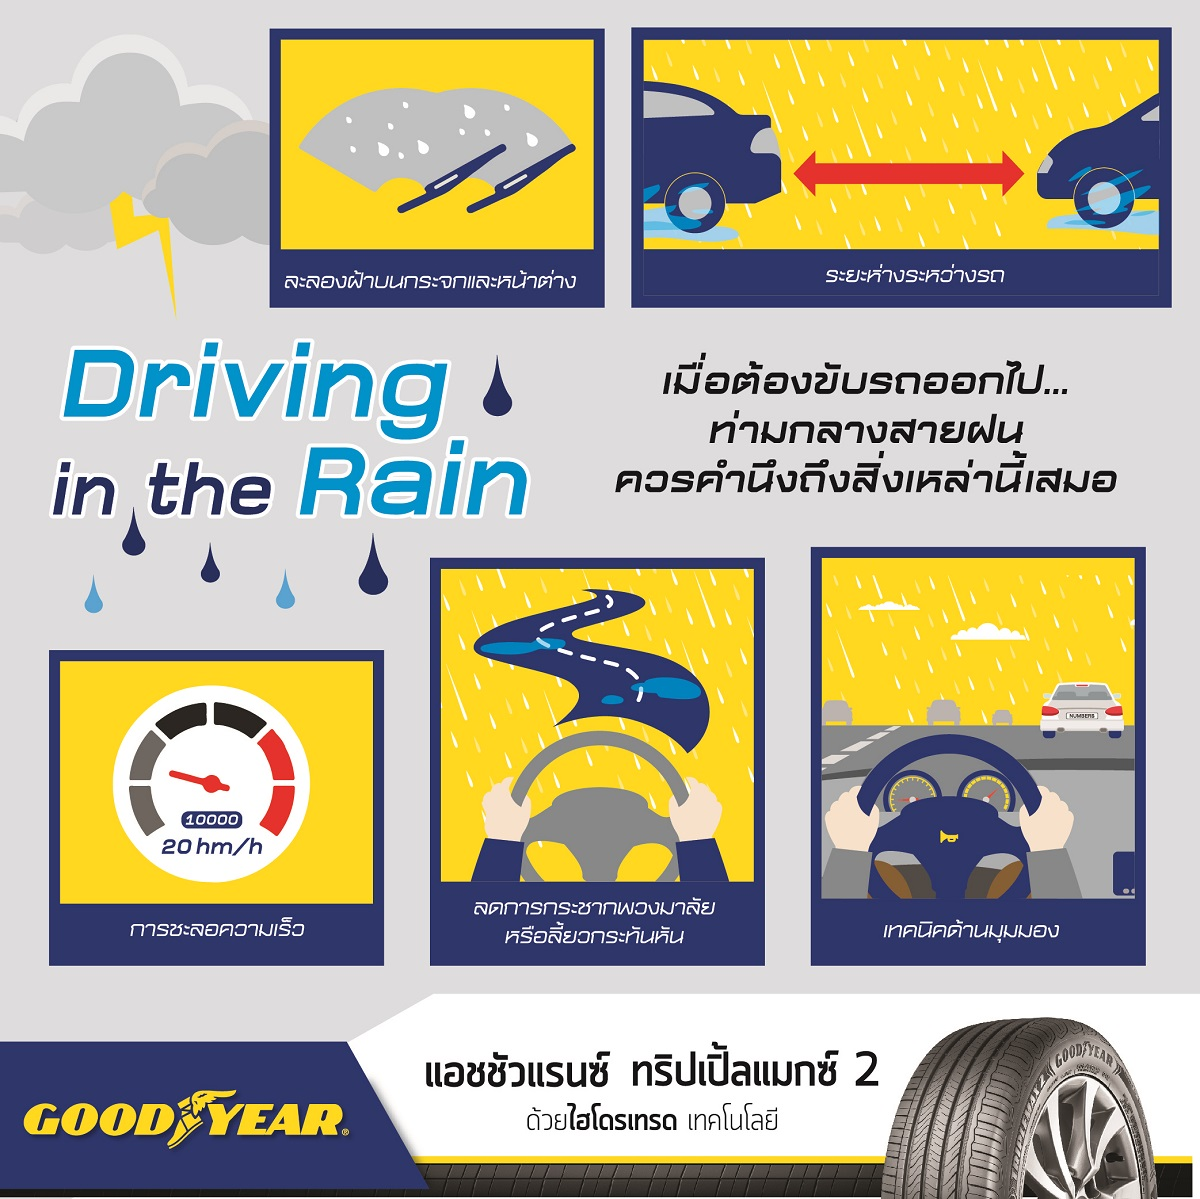 AW_Infographic 5 Tips_Driving in the rain re